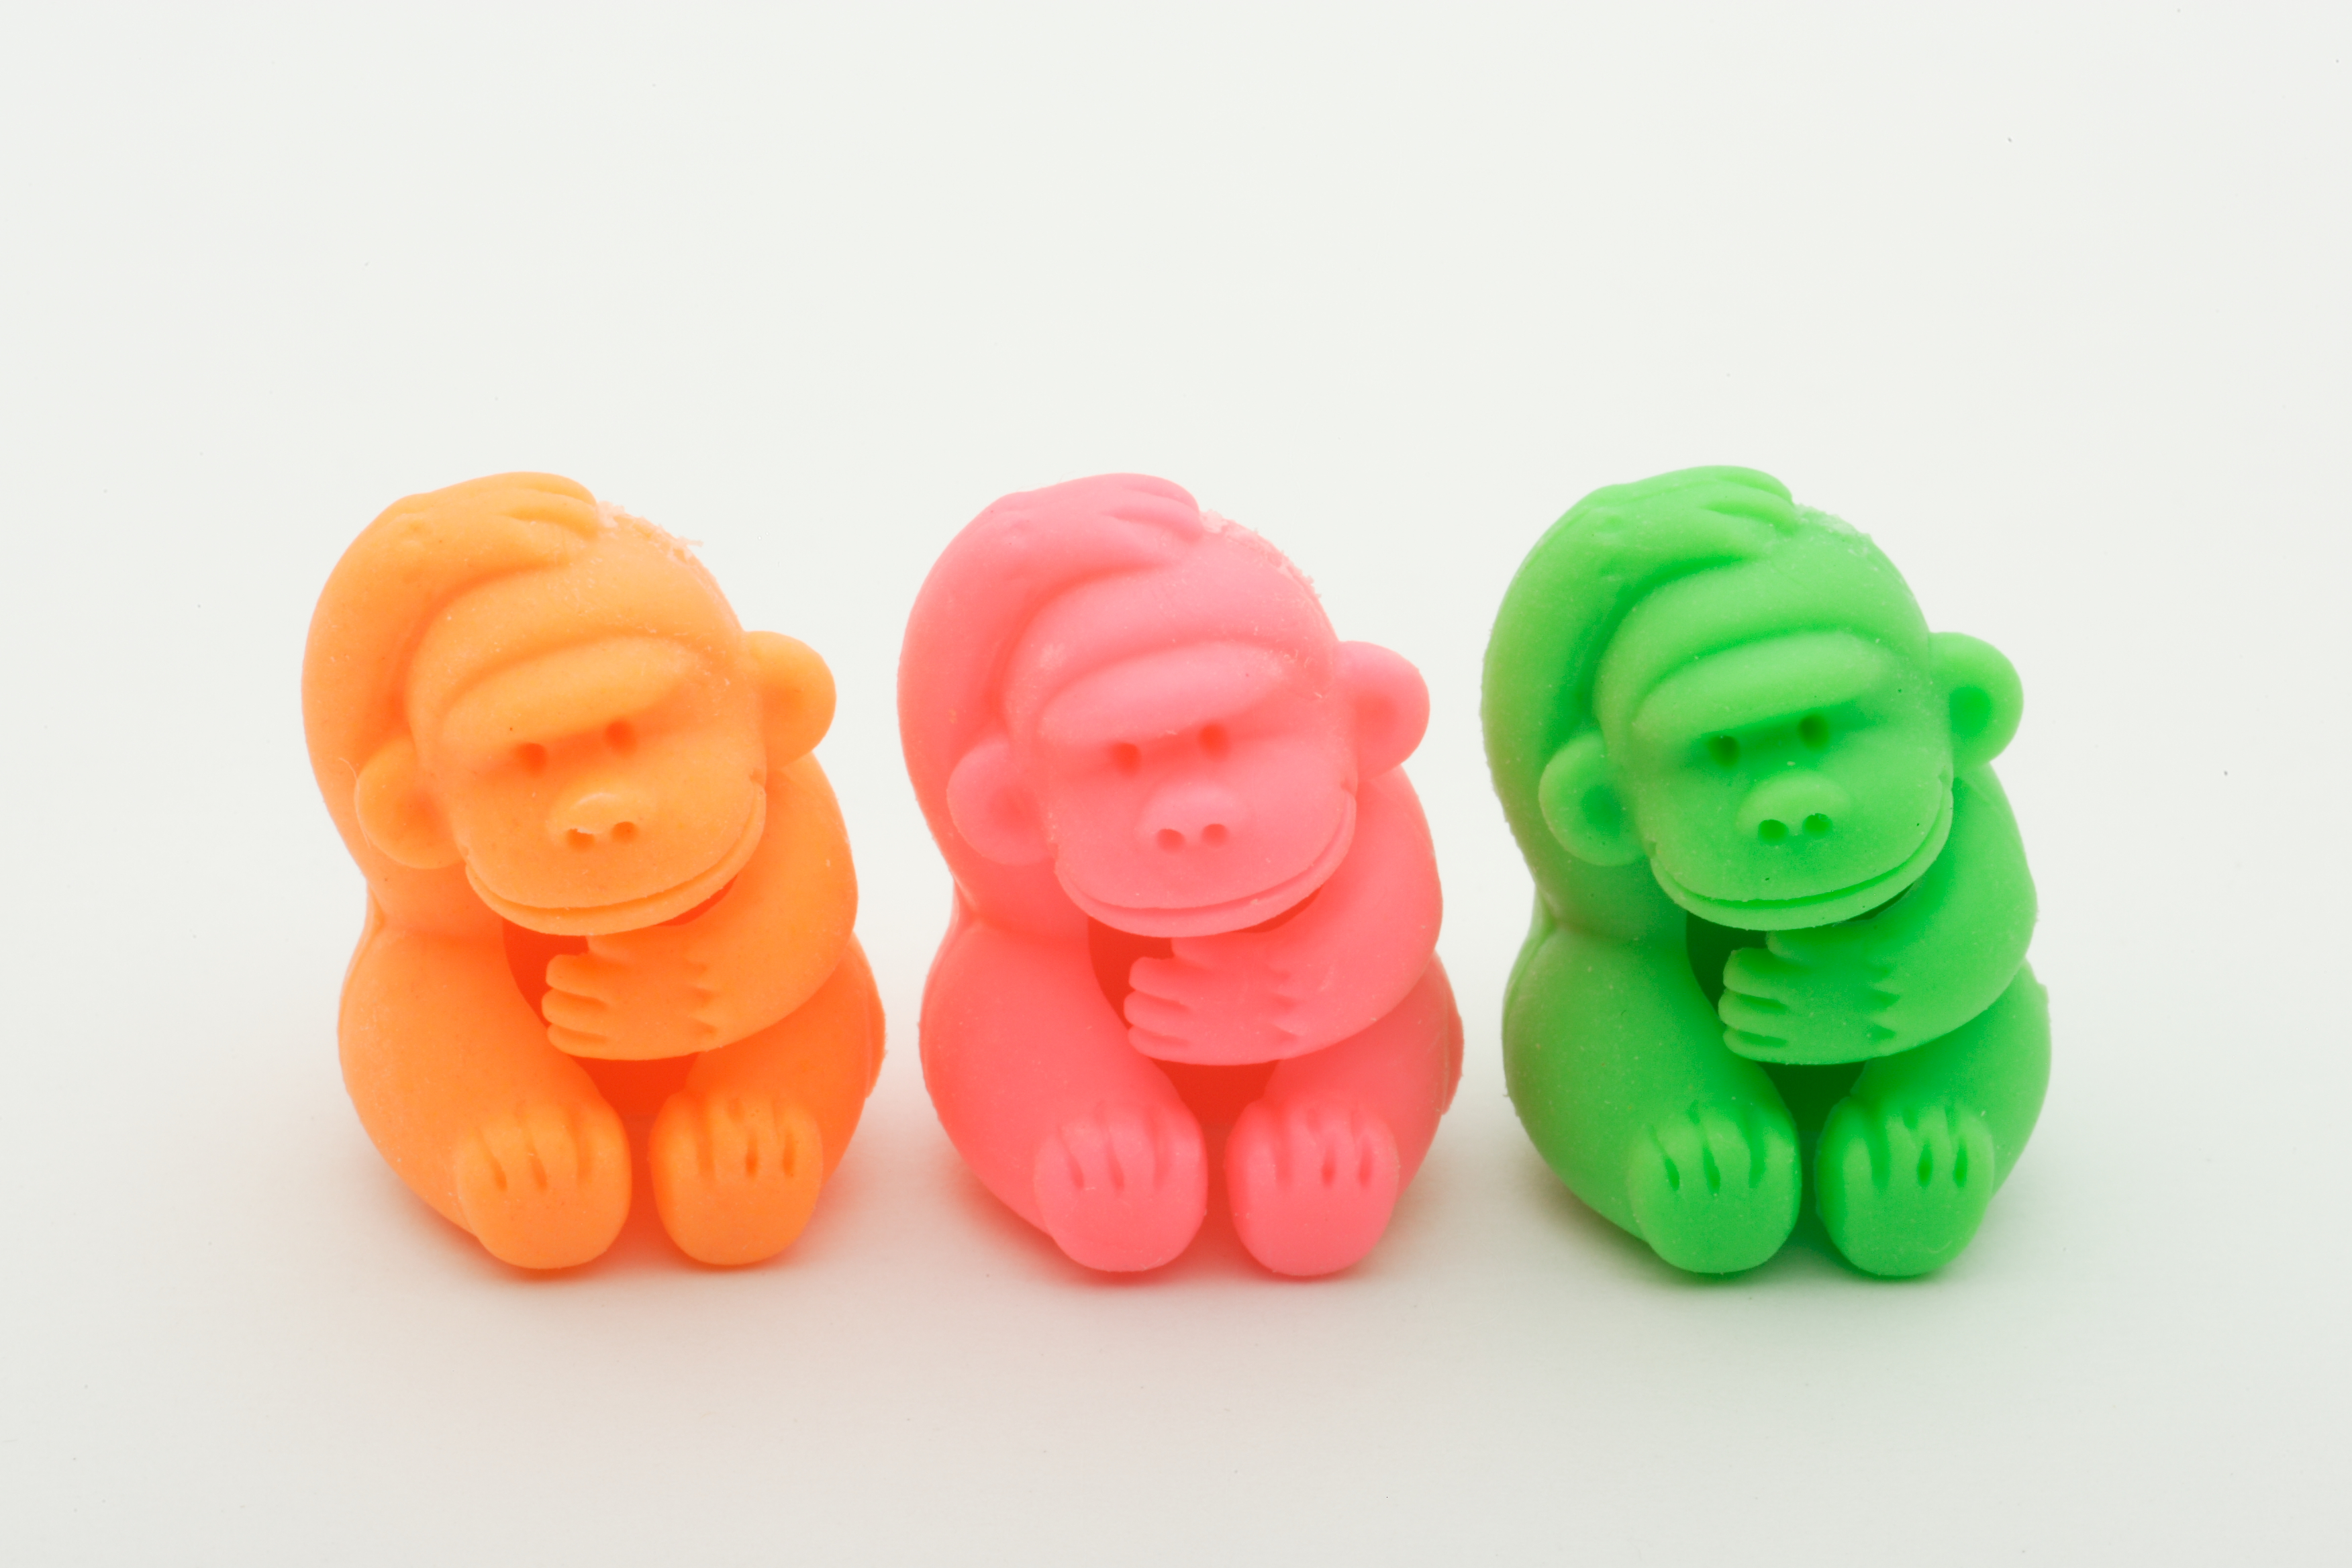 242 3 Pcs of Top Erasers Gorilla